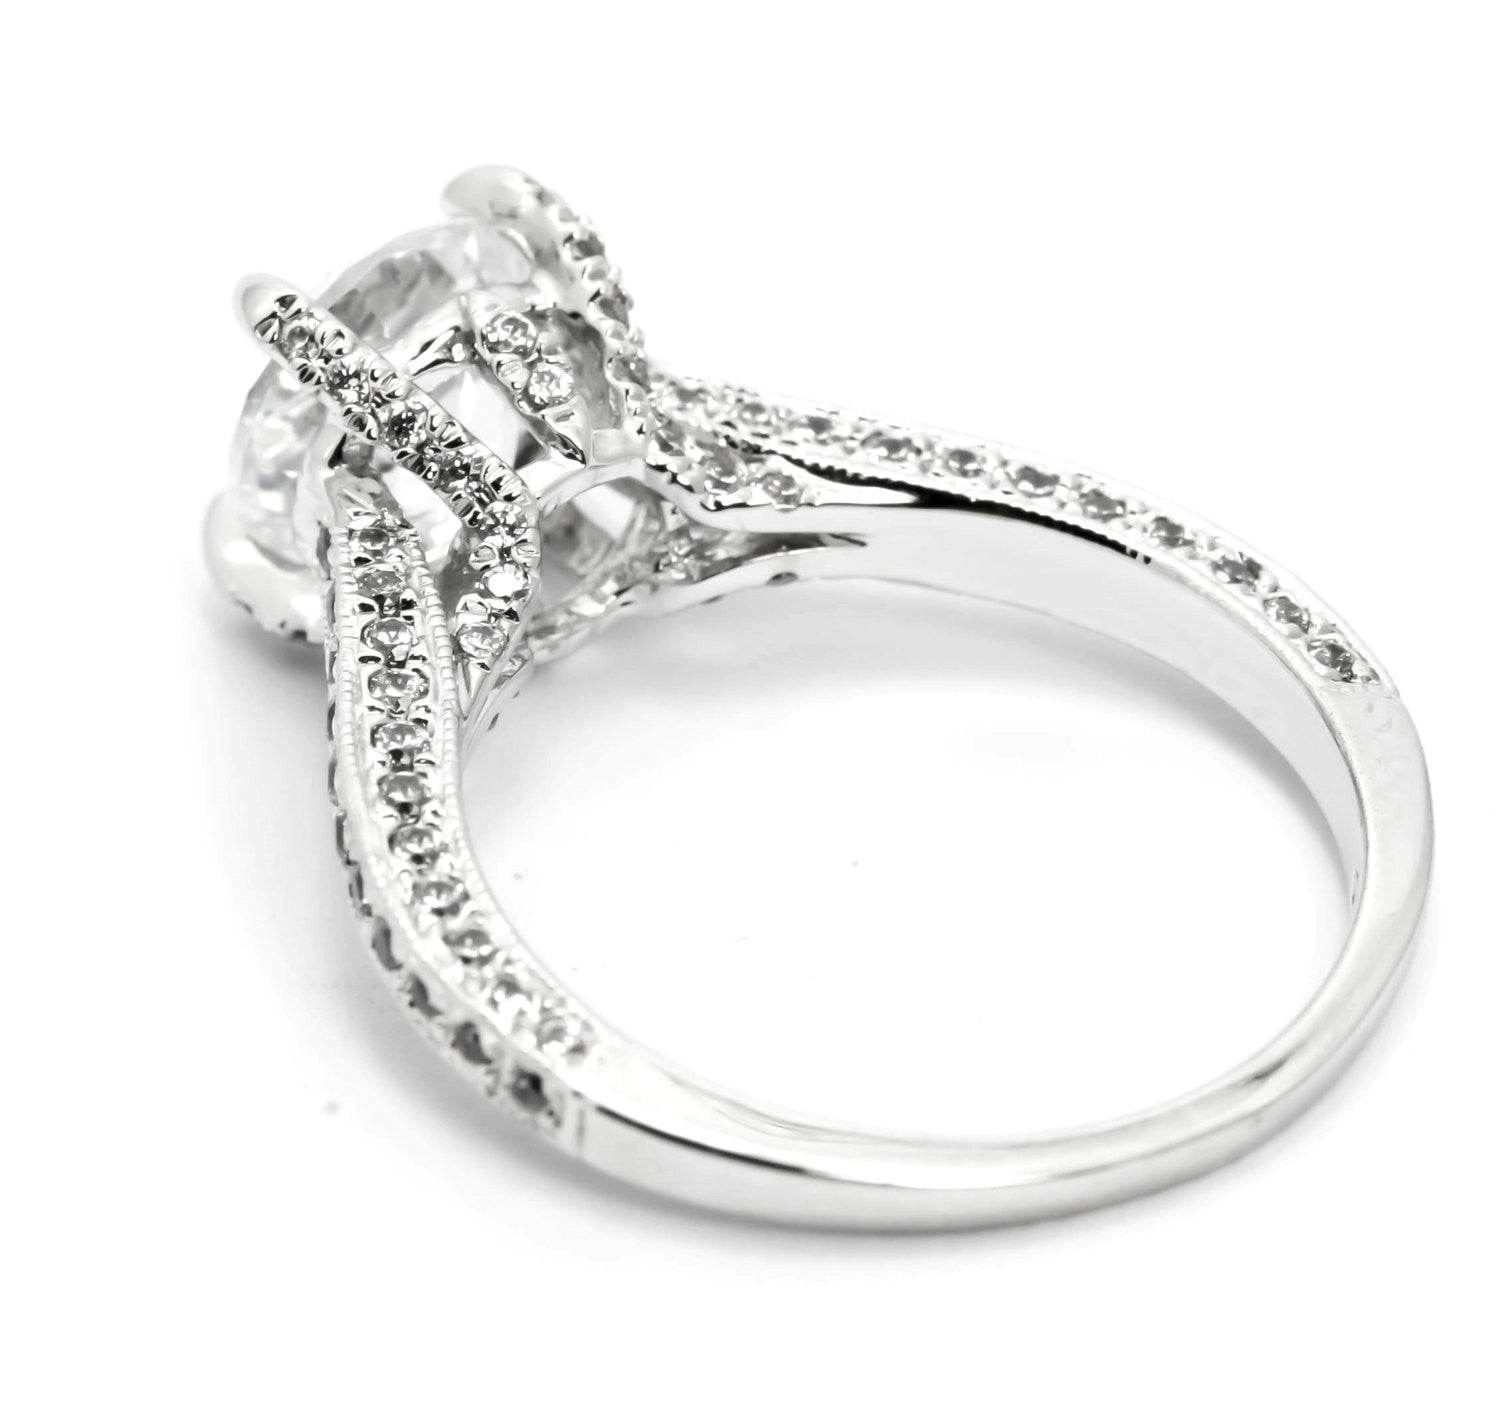 Moissanite Engagement Ring, Unique Solitaire With 2 Carat Forever Brilliant Moissanite & 1.0 Carat Diamonds, Anniversary Ring - FB85051